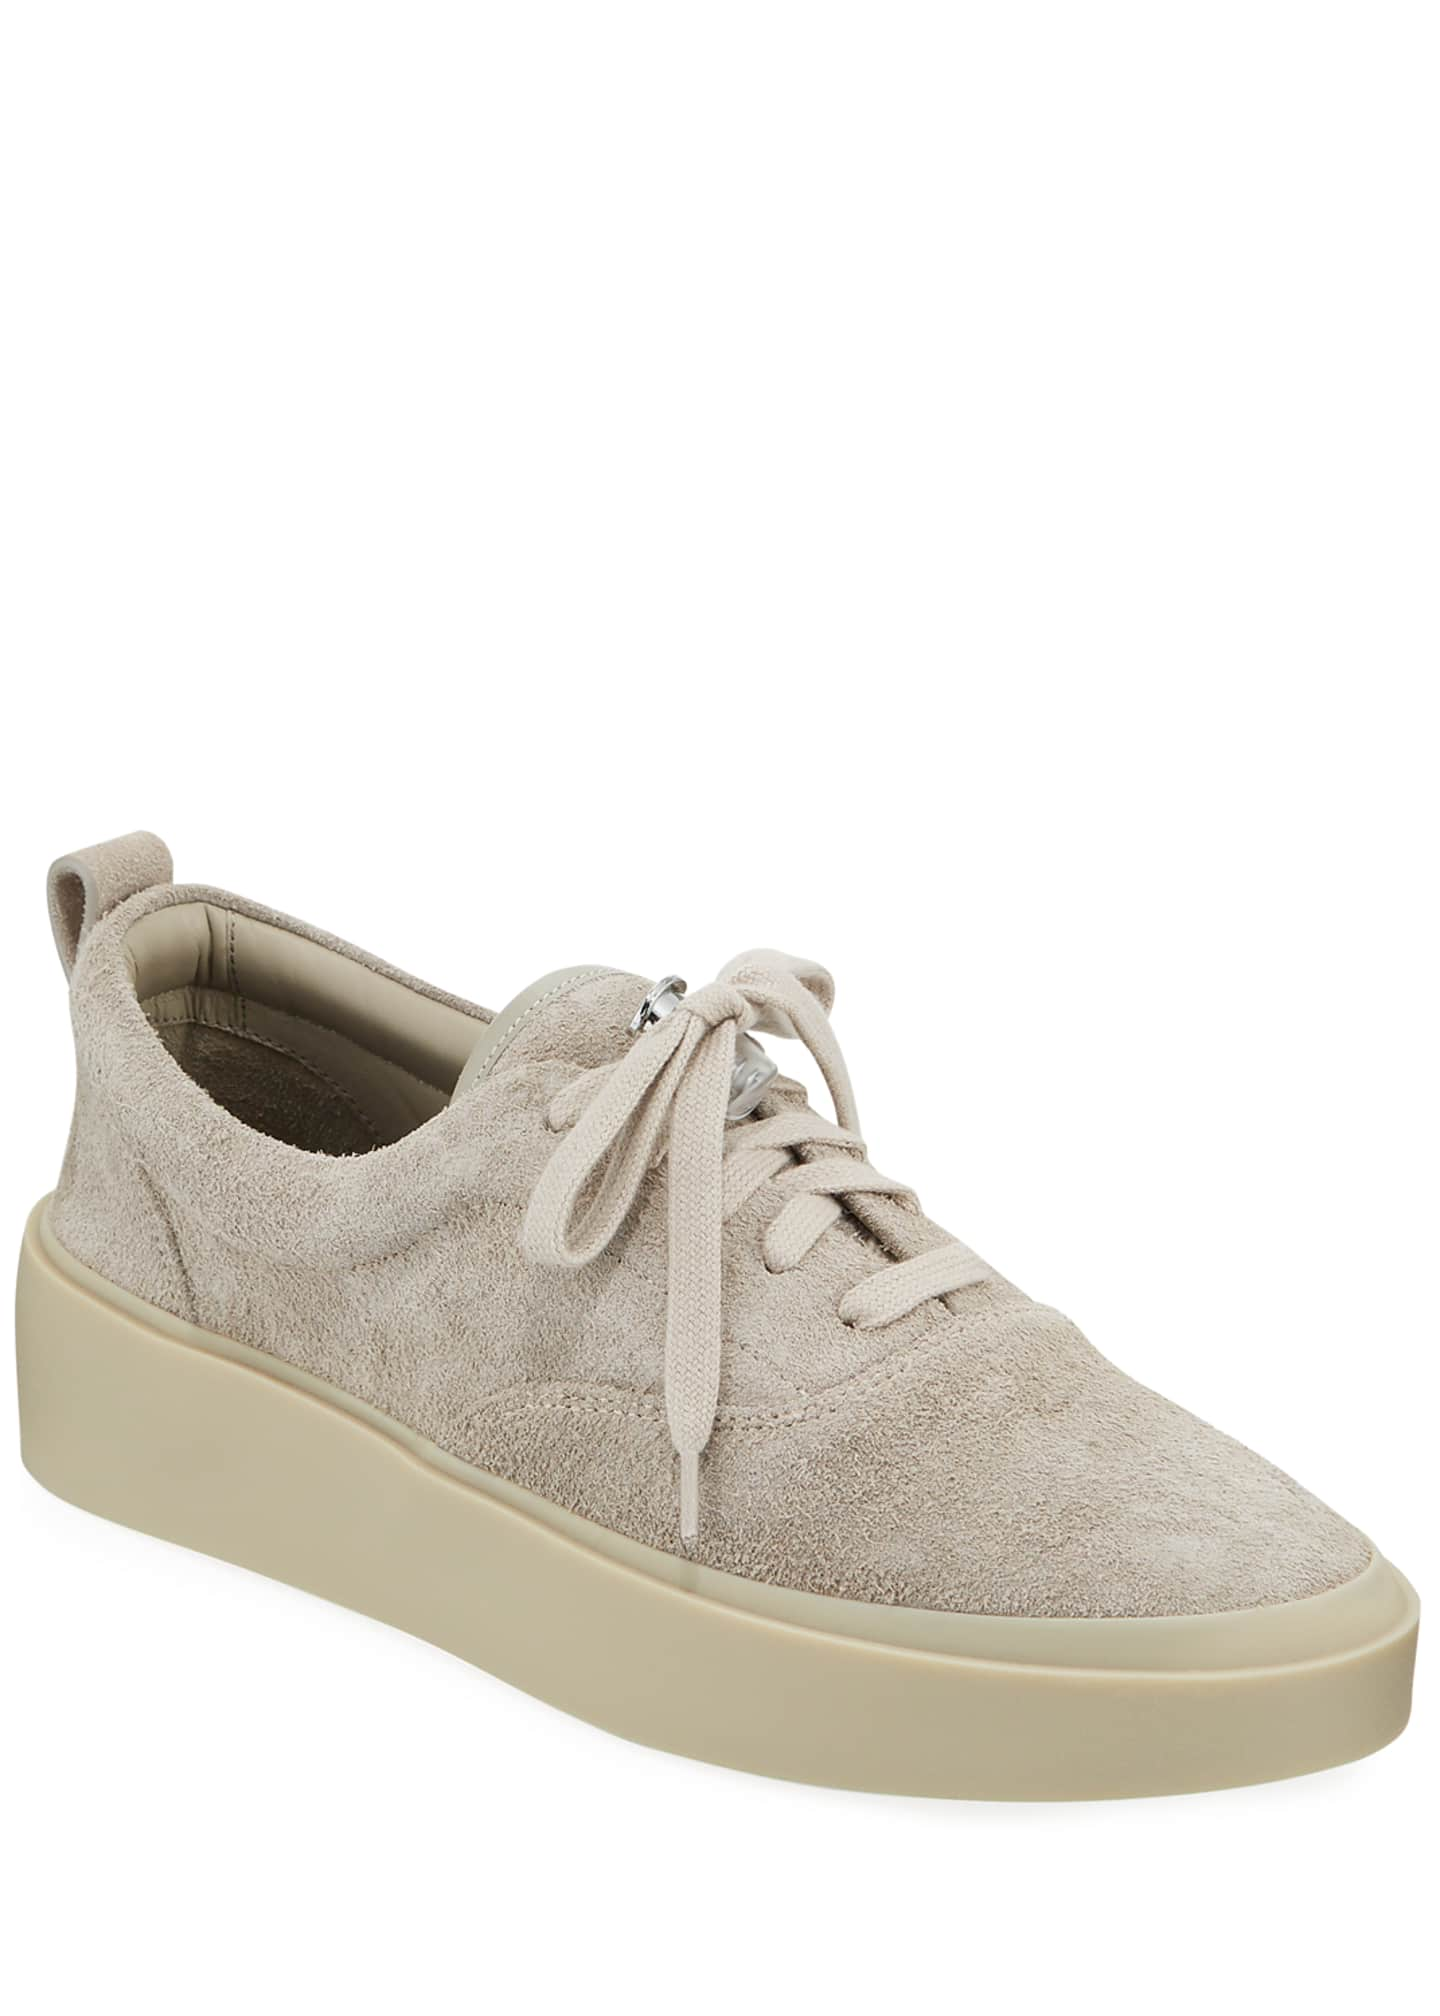 Fear of God Men's 101 Low-Top Suede Sneakers